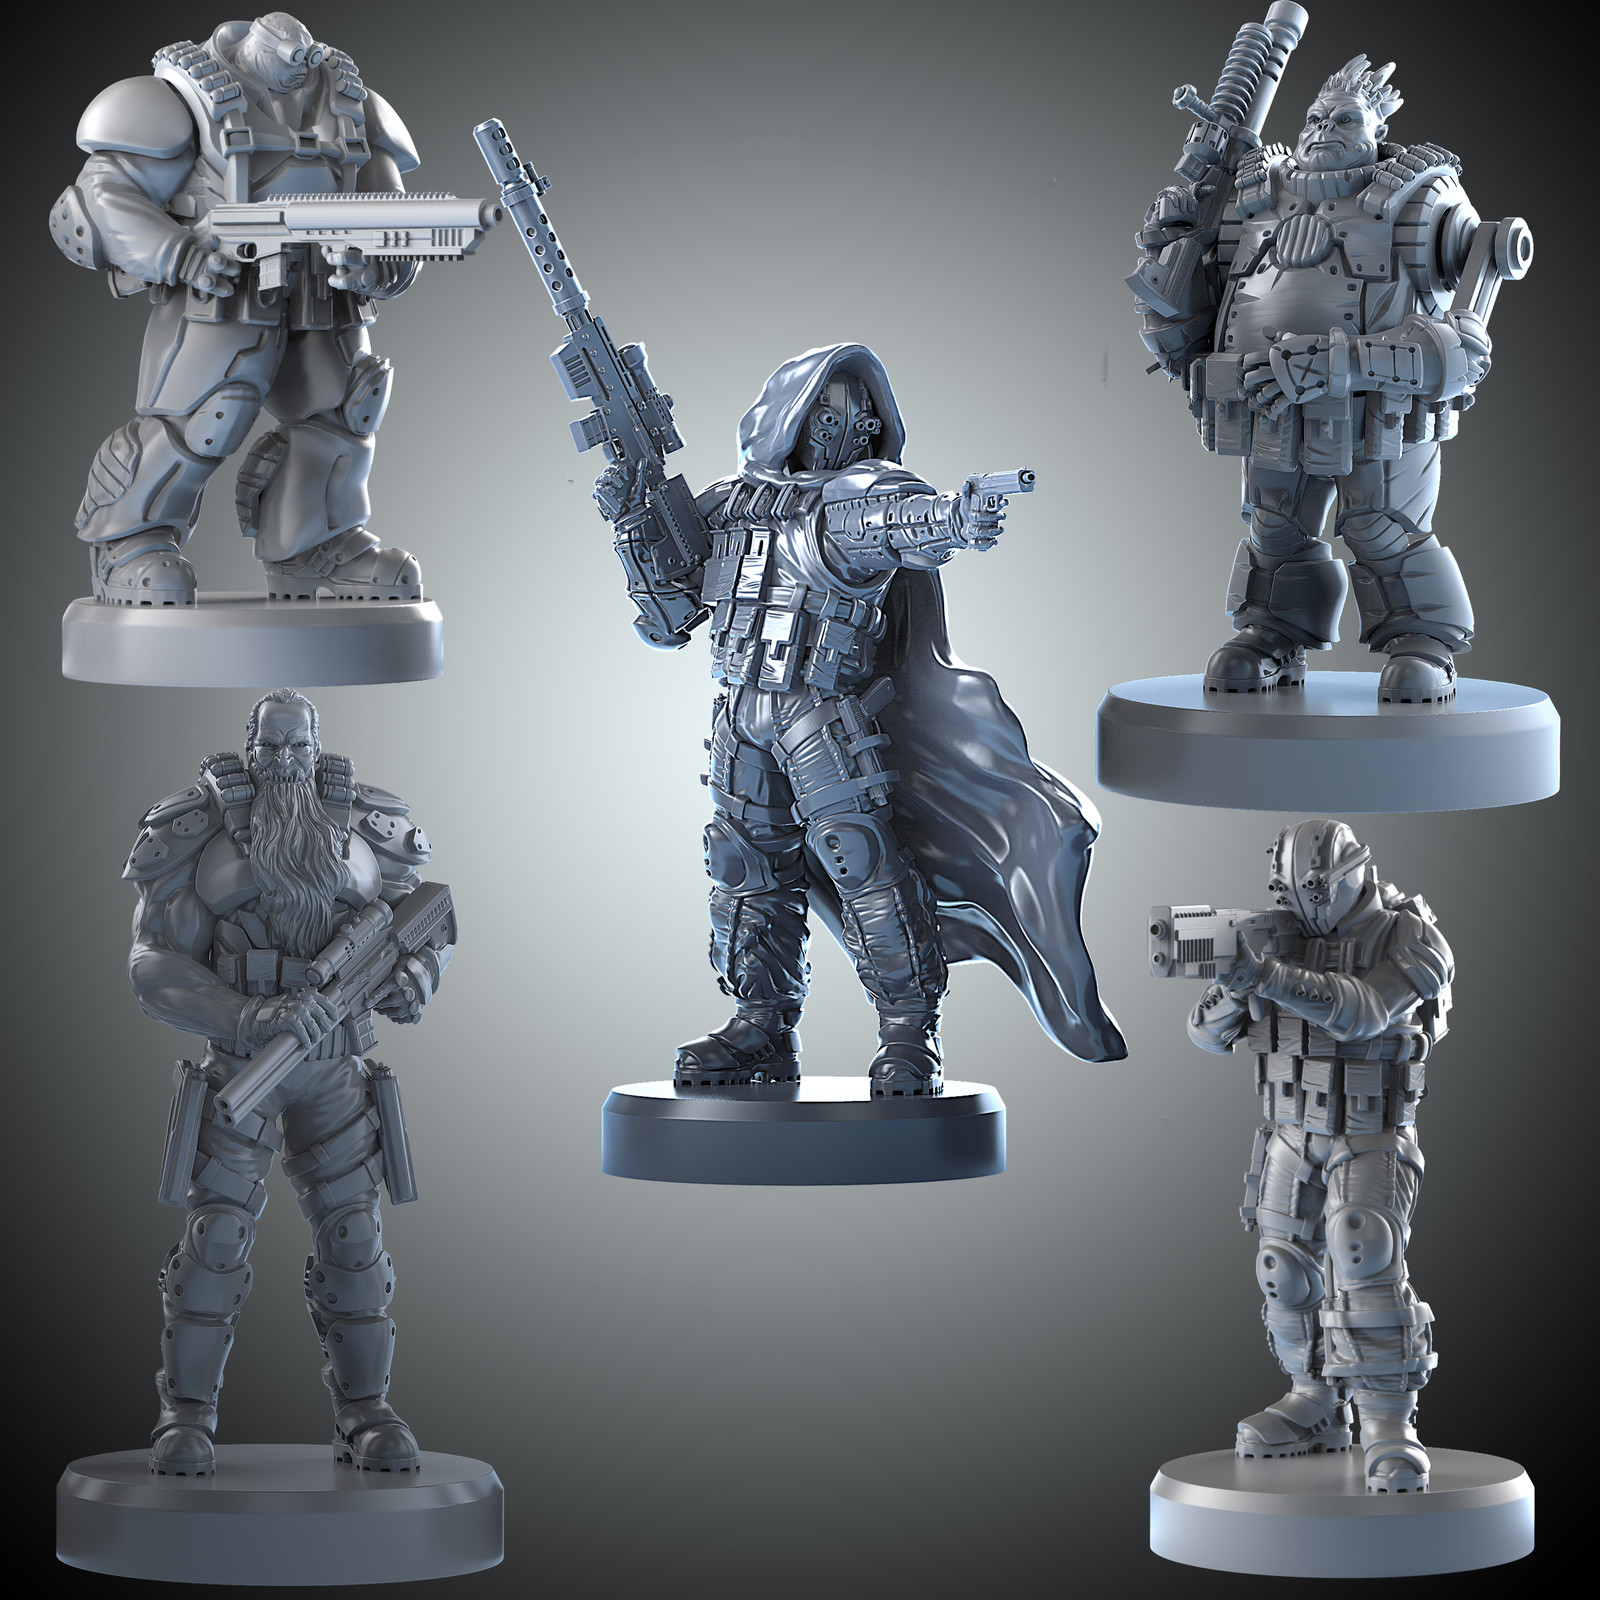 Archona Games miniatures